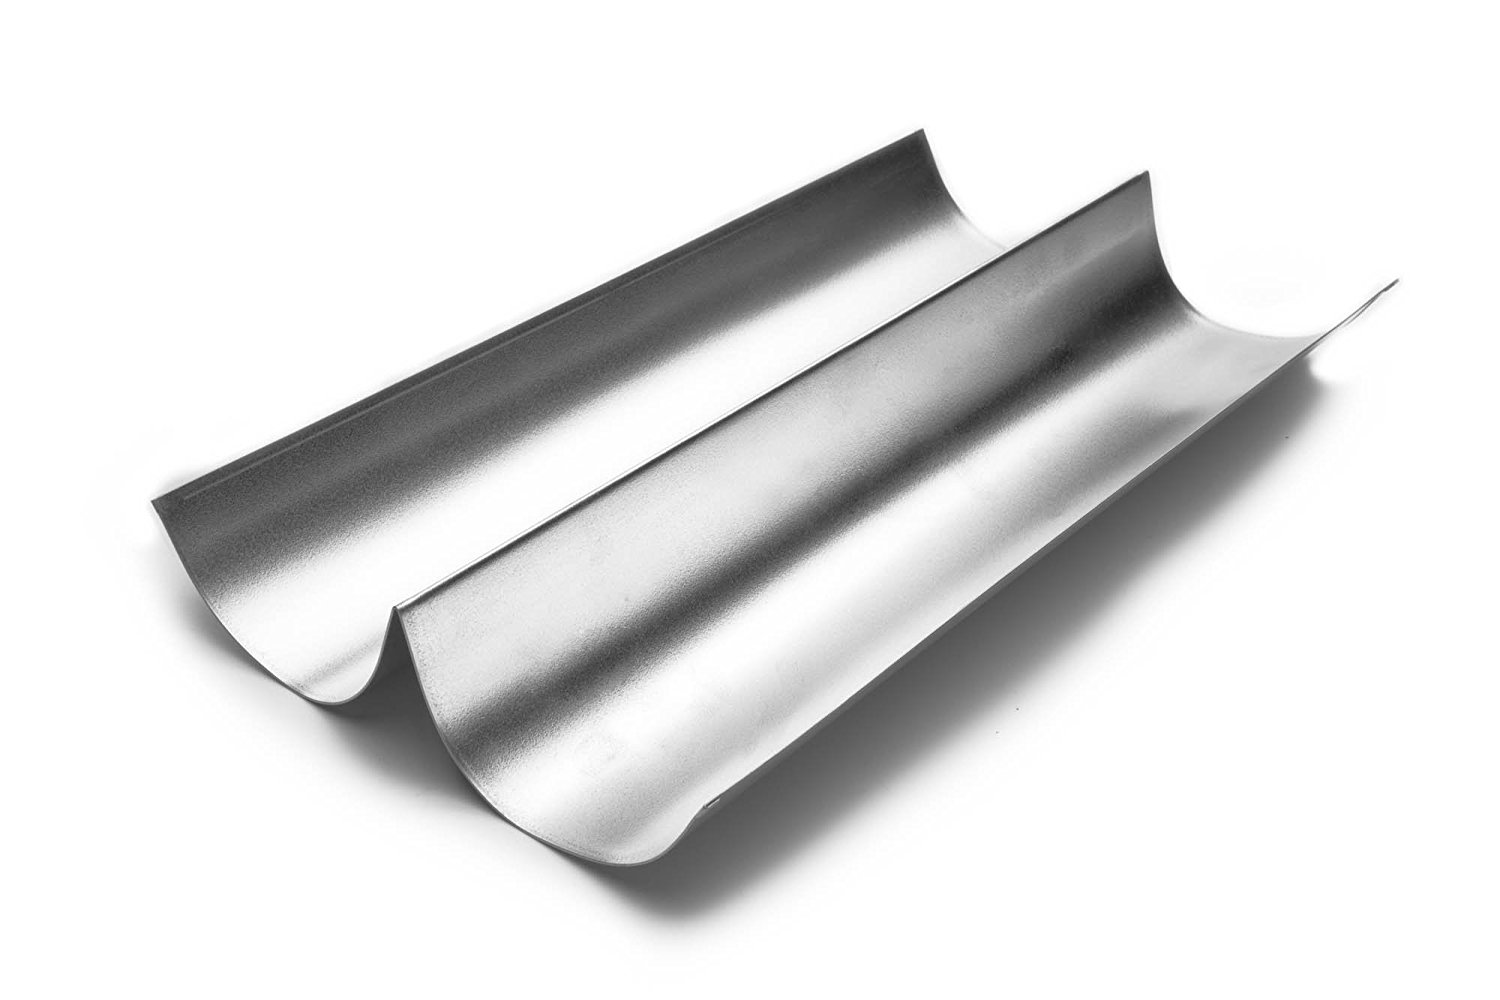 4629 Italian Bread Pan, Tin-Plated Steel, 15-InchConstructed of durable, sleek tin-plated steel By Fox Run by